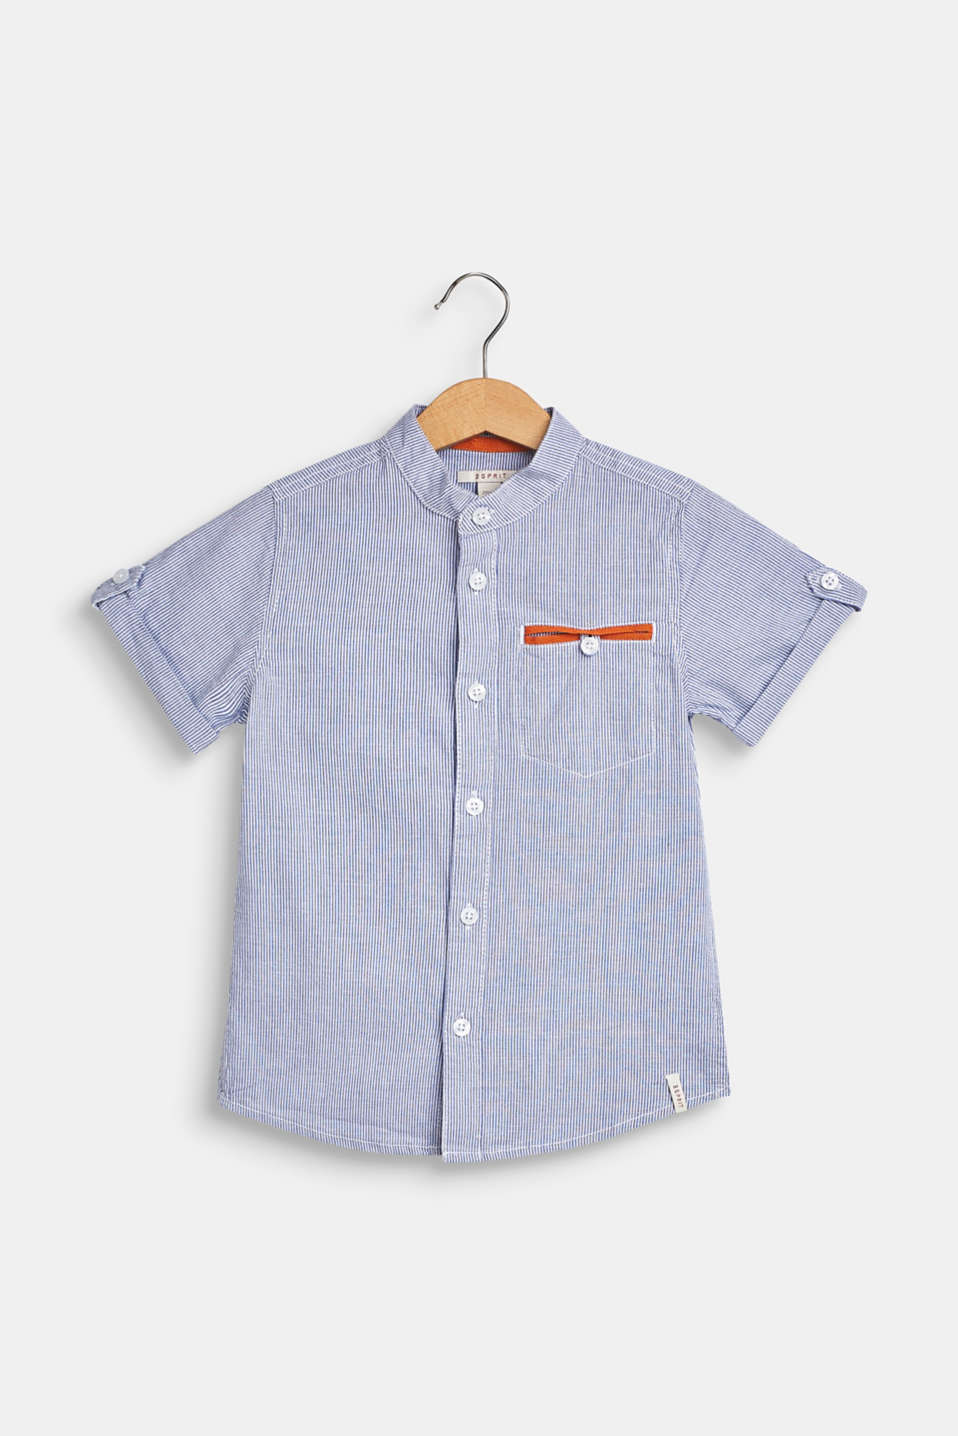 Esprit - Striped short sleeve shirt, 100% cotton